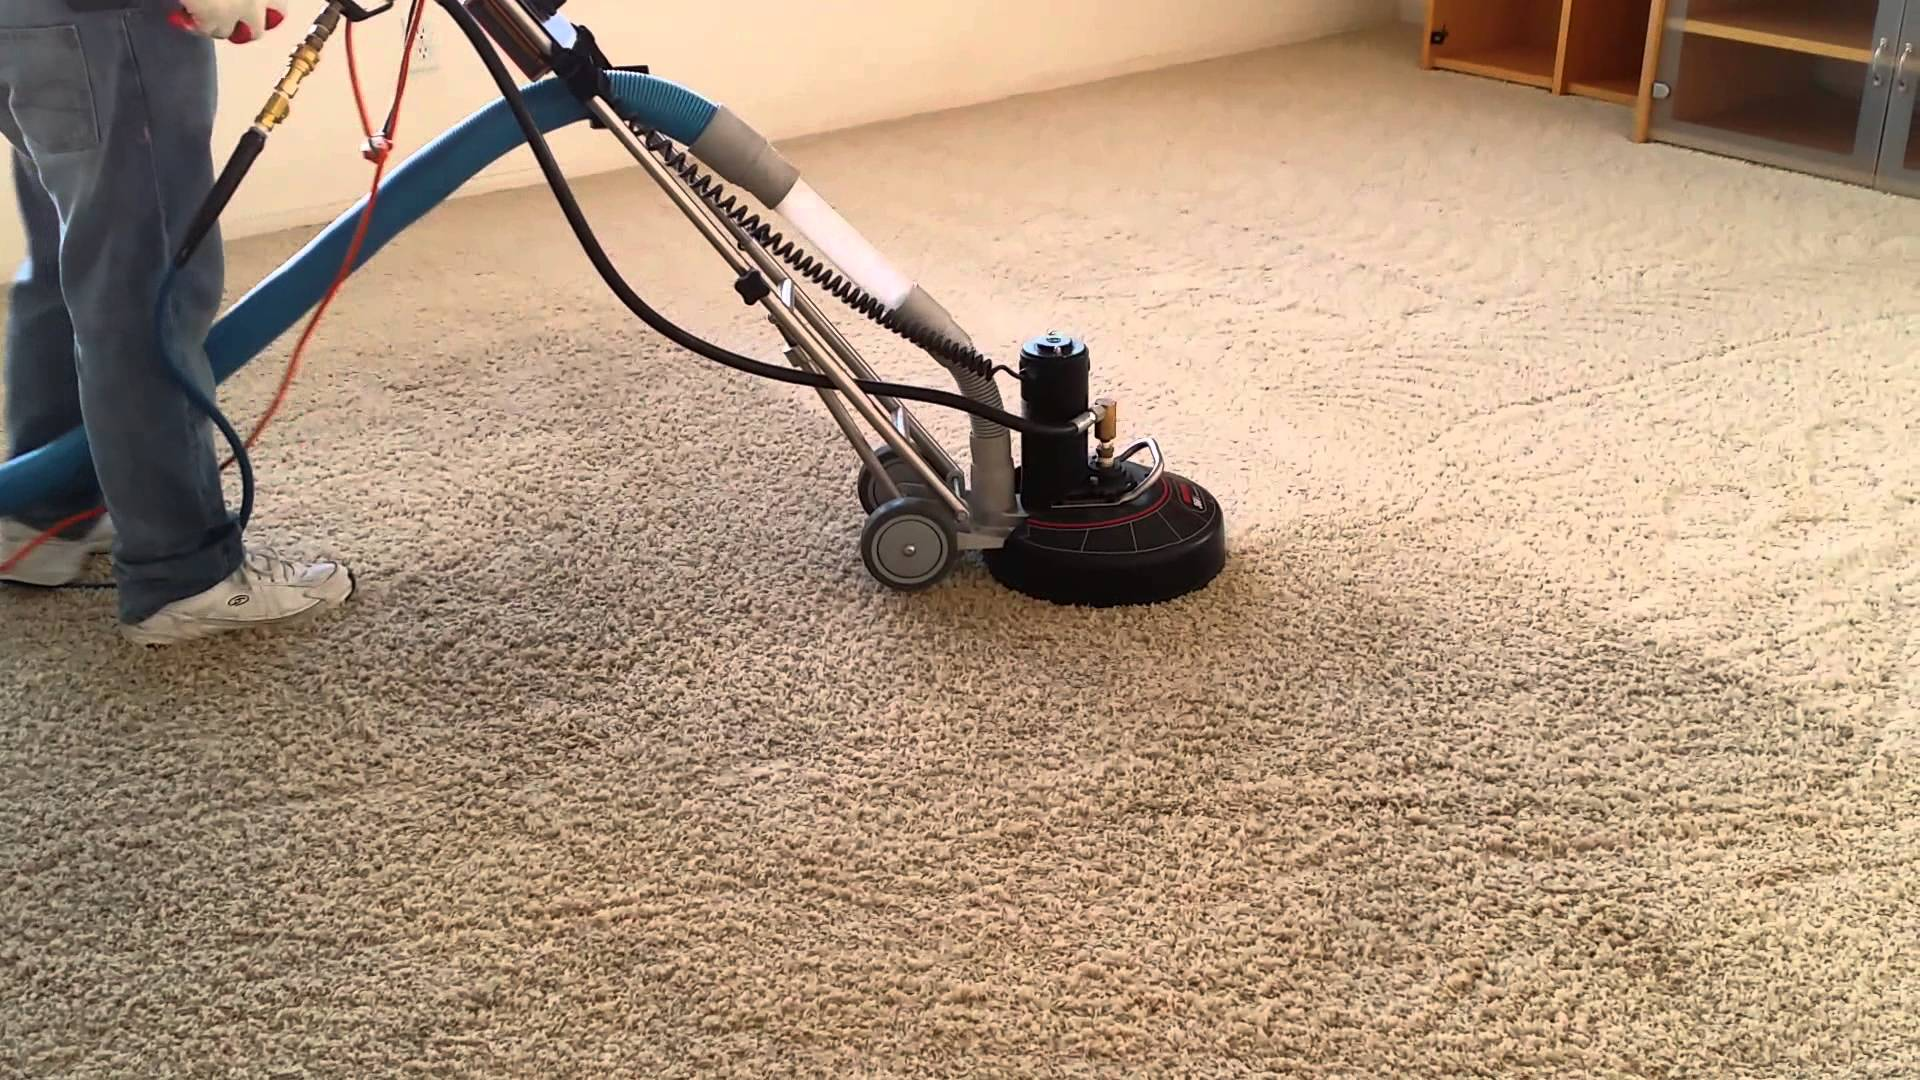 There is straightforward carpet cleaning techniques you can do yourself at home.